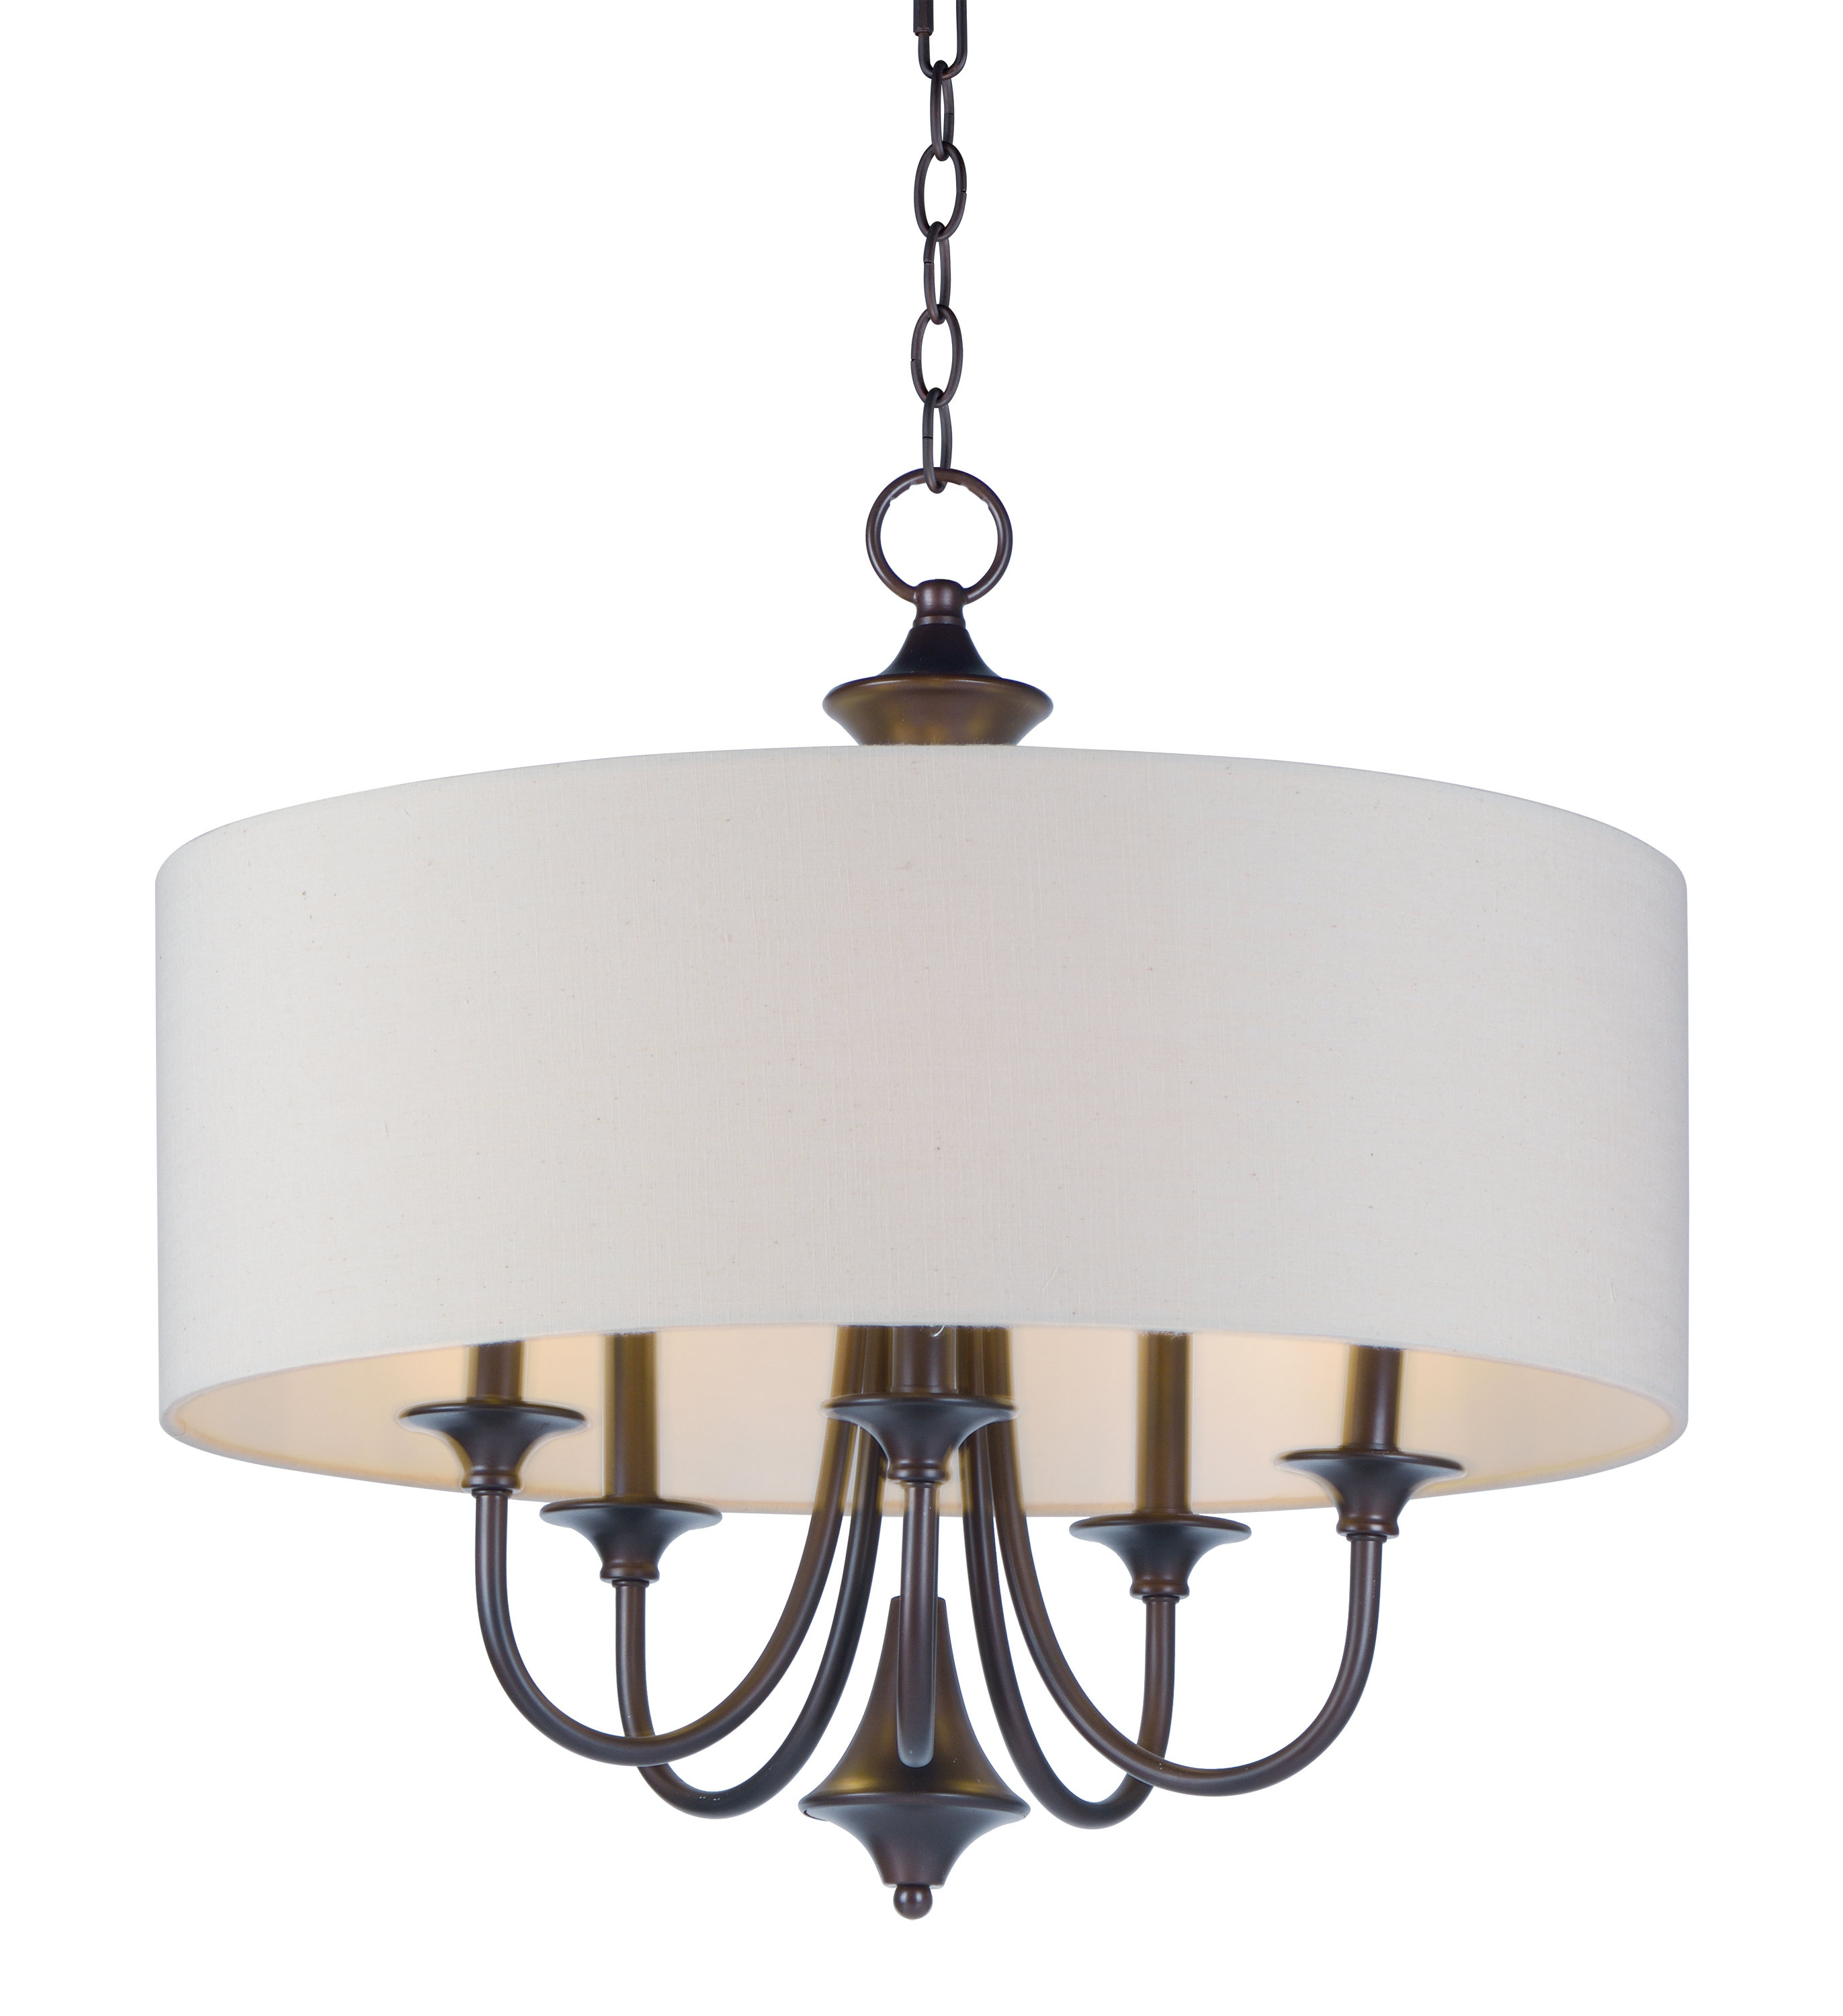 Darby Home Co Becher 5 Light Drum Chandelier Within Most Recently Released Abel 5 Light Drum Chandeliers (View 8 of 20)